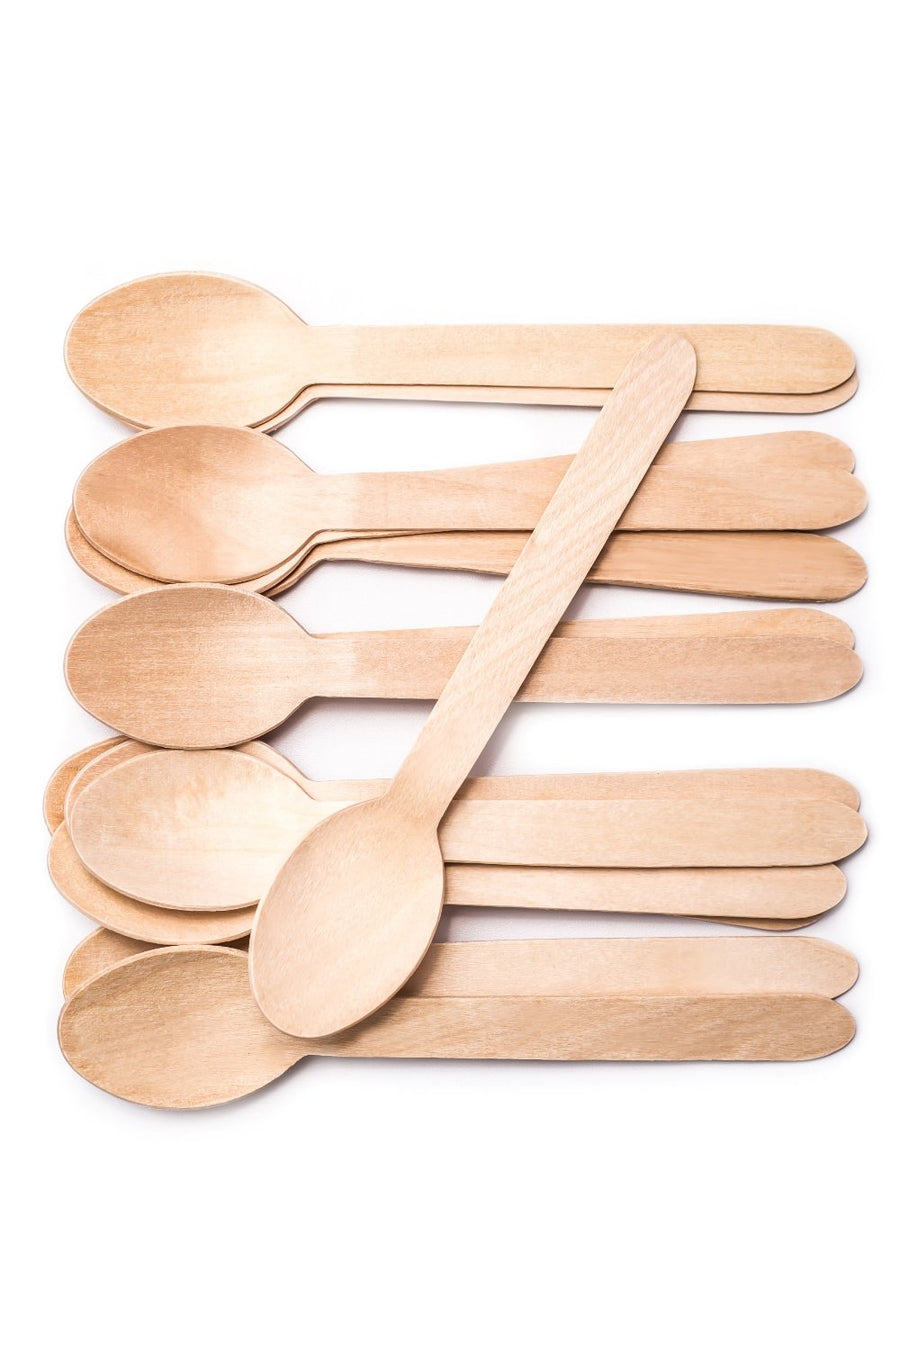 Disposable Wooden Spoons 100PC